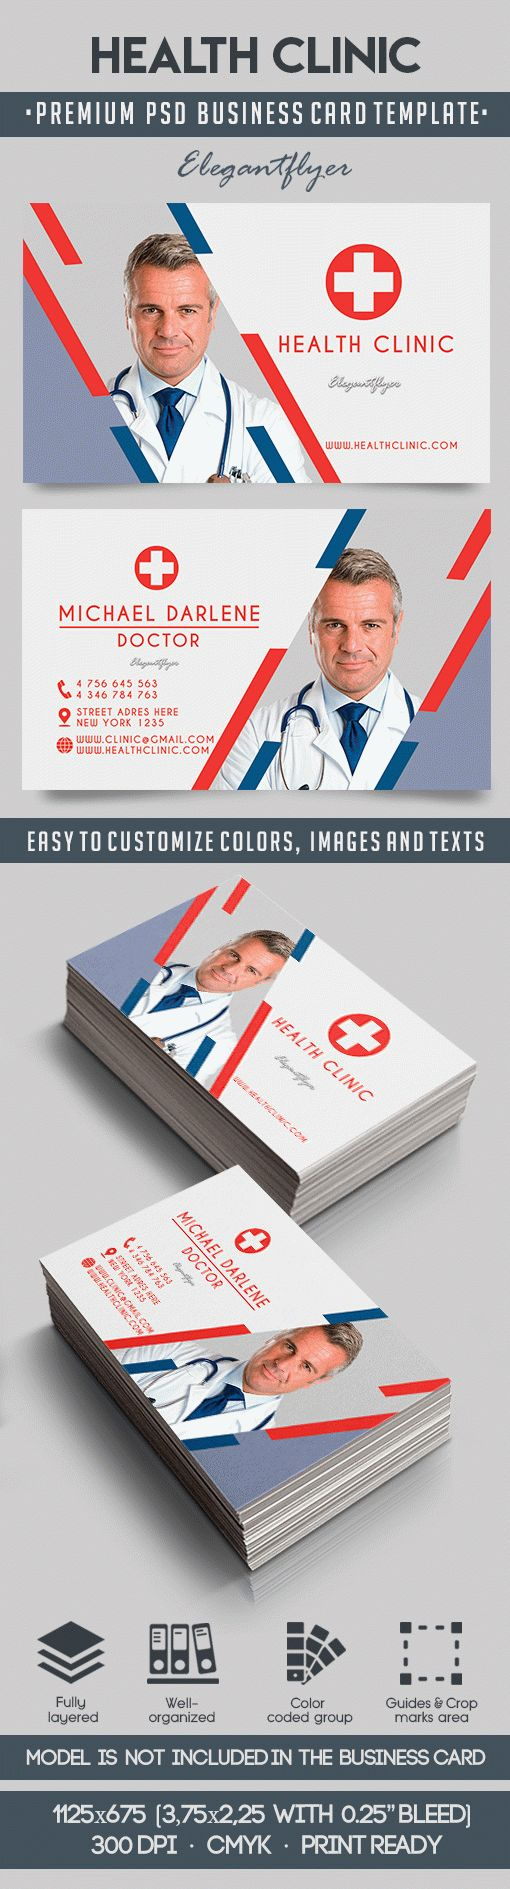 Health Clinic – Premium Business Card Templates PSD